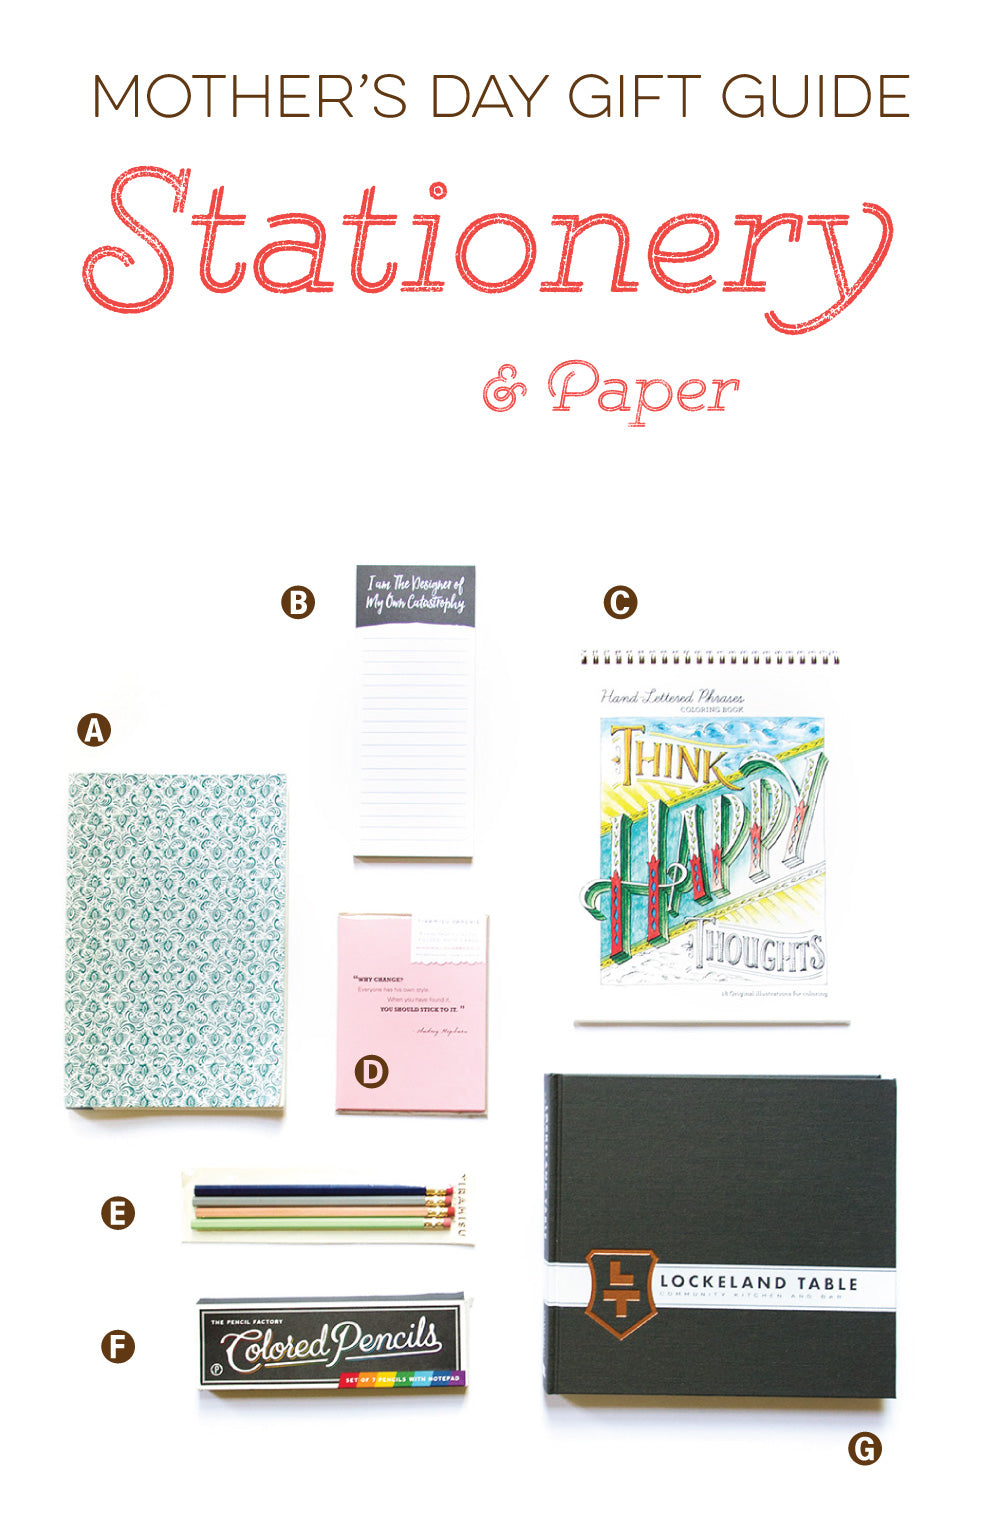 Mother's Day Gift Guide - Stationery and paper